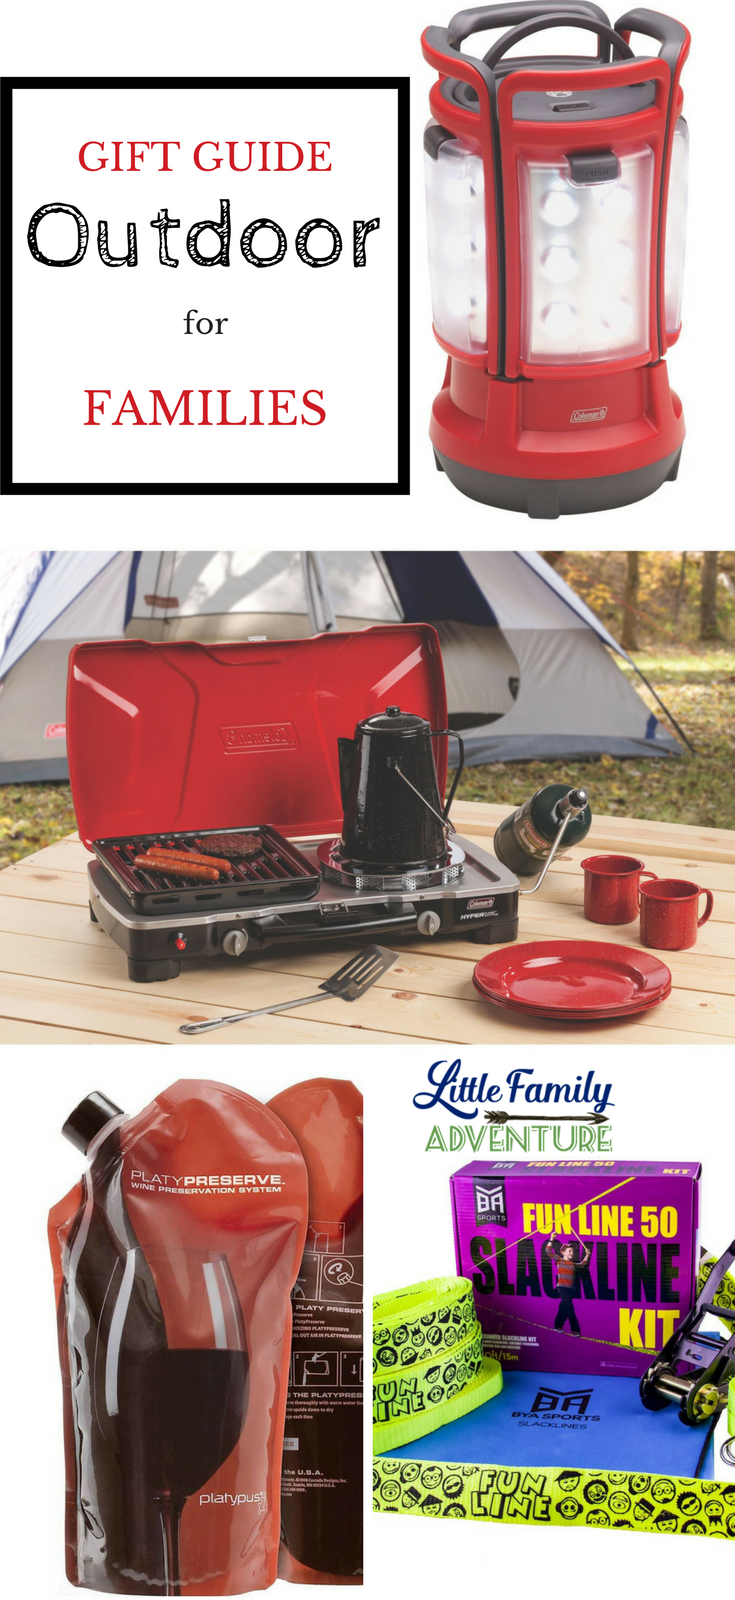 a0485c25f9c Holiday Gift Guide for Outdoor Families - gift ideas for nature lovers